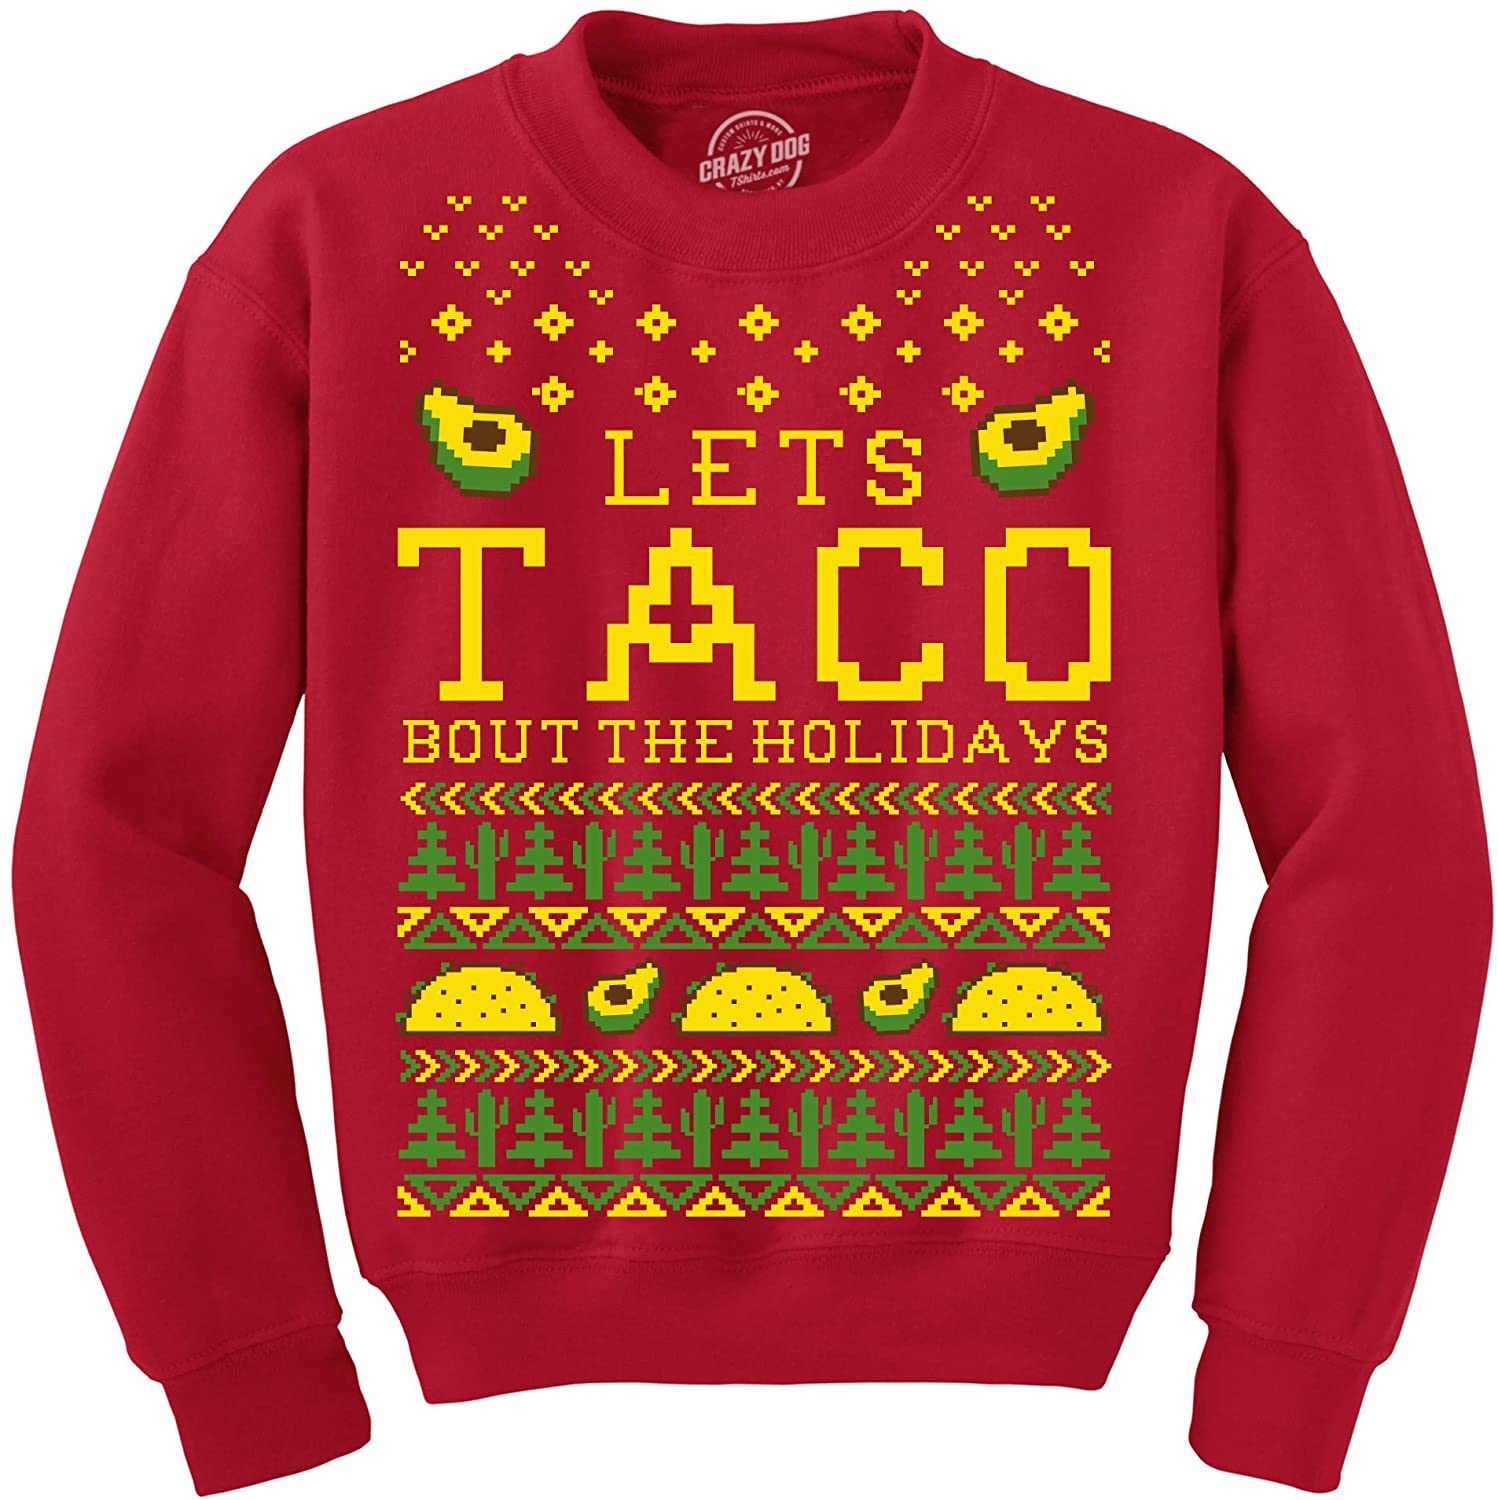 Sweatshirt Lets Taco Bout The Holidays Christmas Ugly Sweater Funny Holiday Top